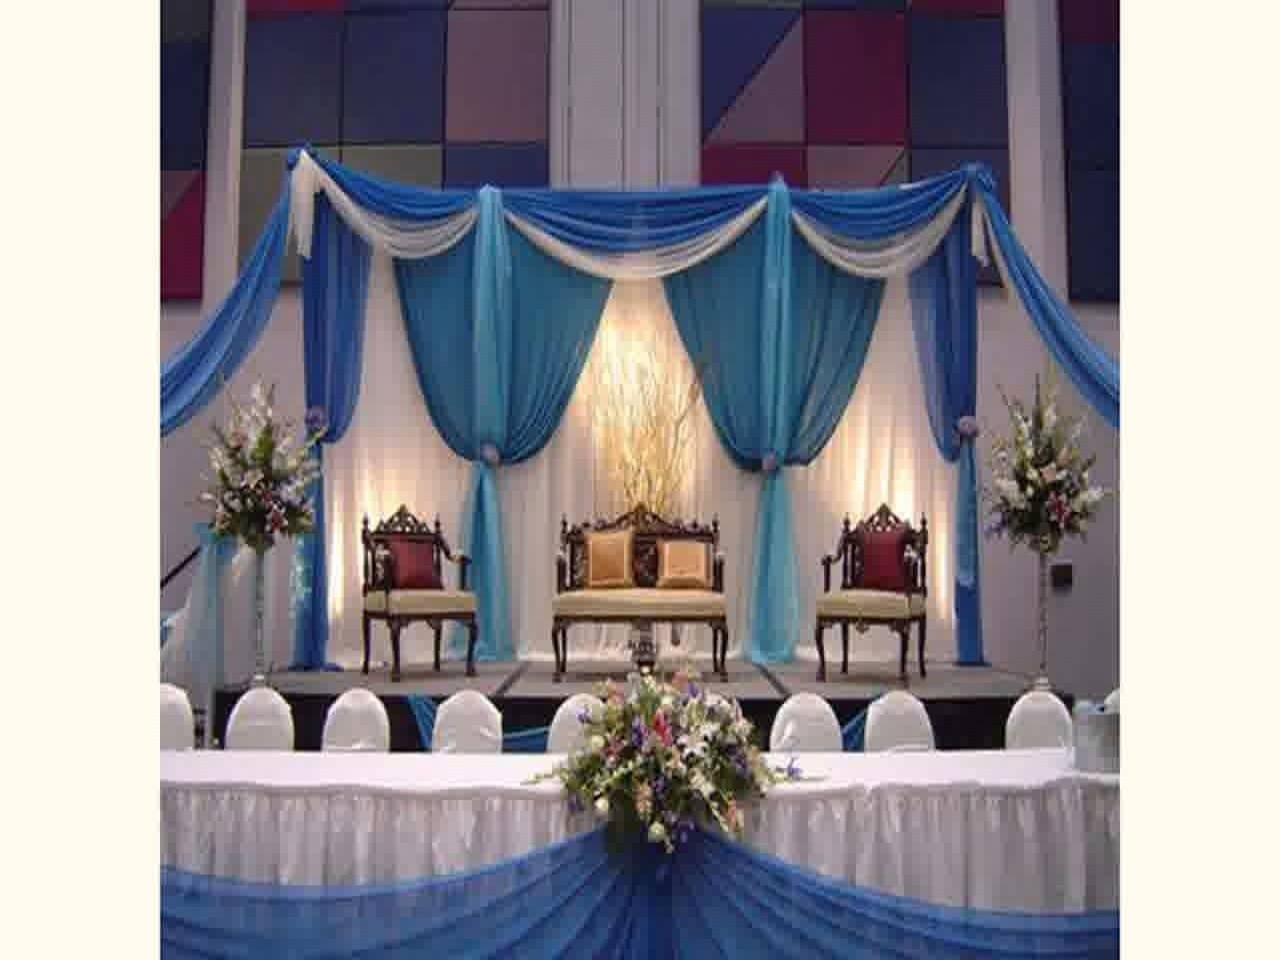 10 Famous Simple Wedding Decoration Ideas For Reception decoration ideas for wedding reception new youtube 2020